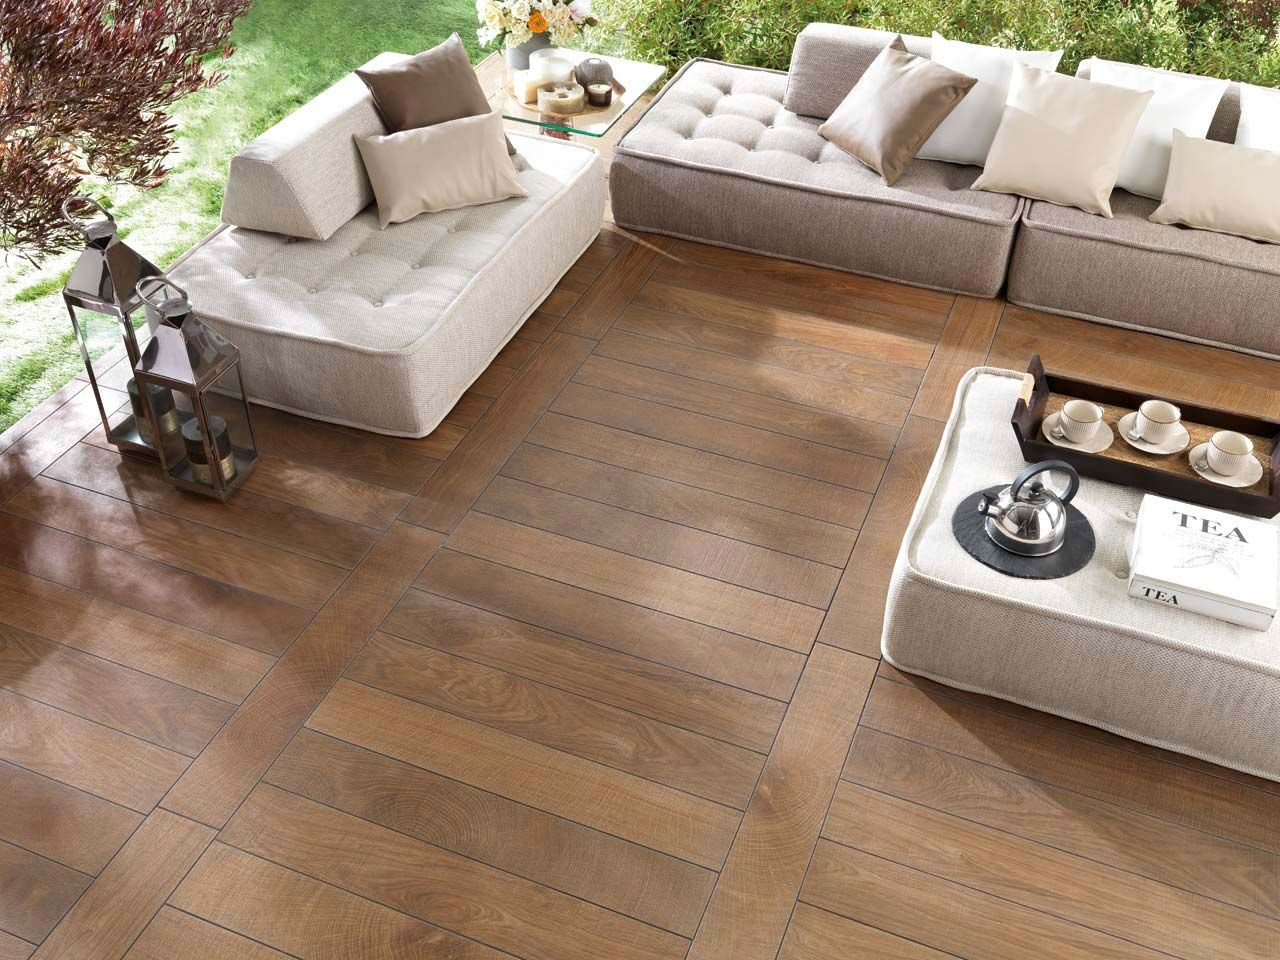 Ceramic parquet is currently a highly valued option when choosing a ...